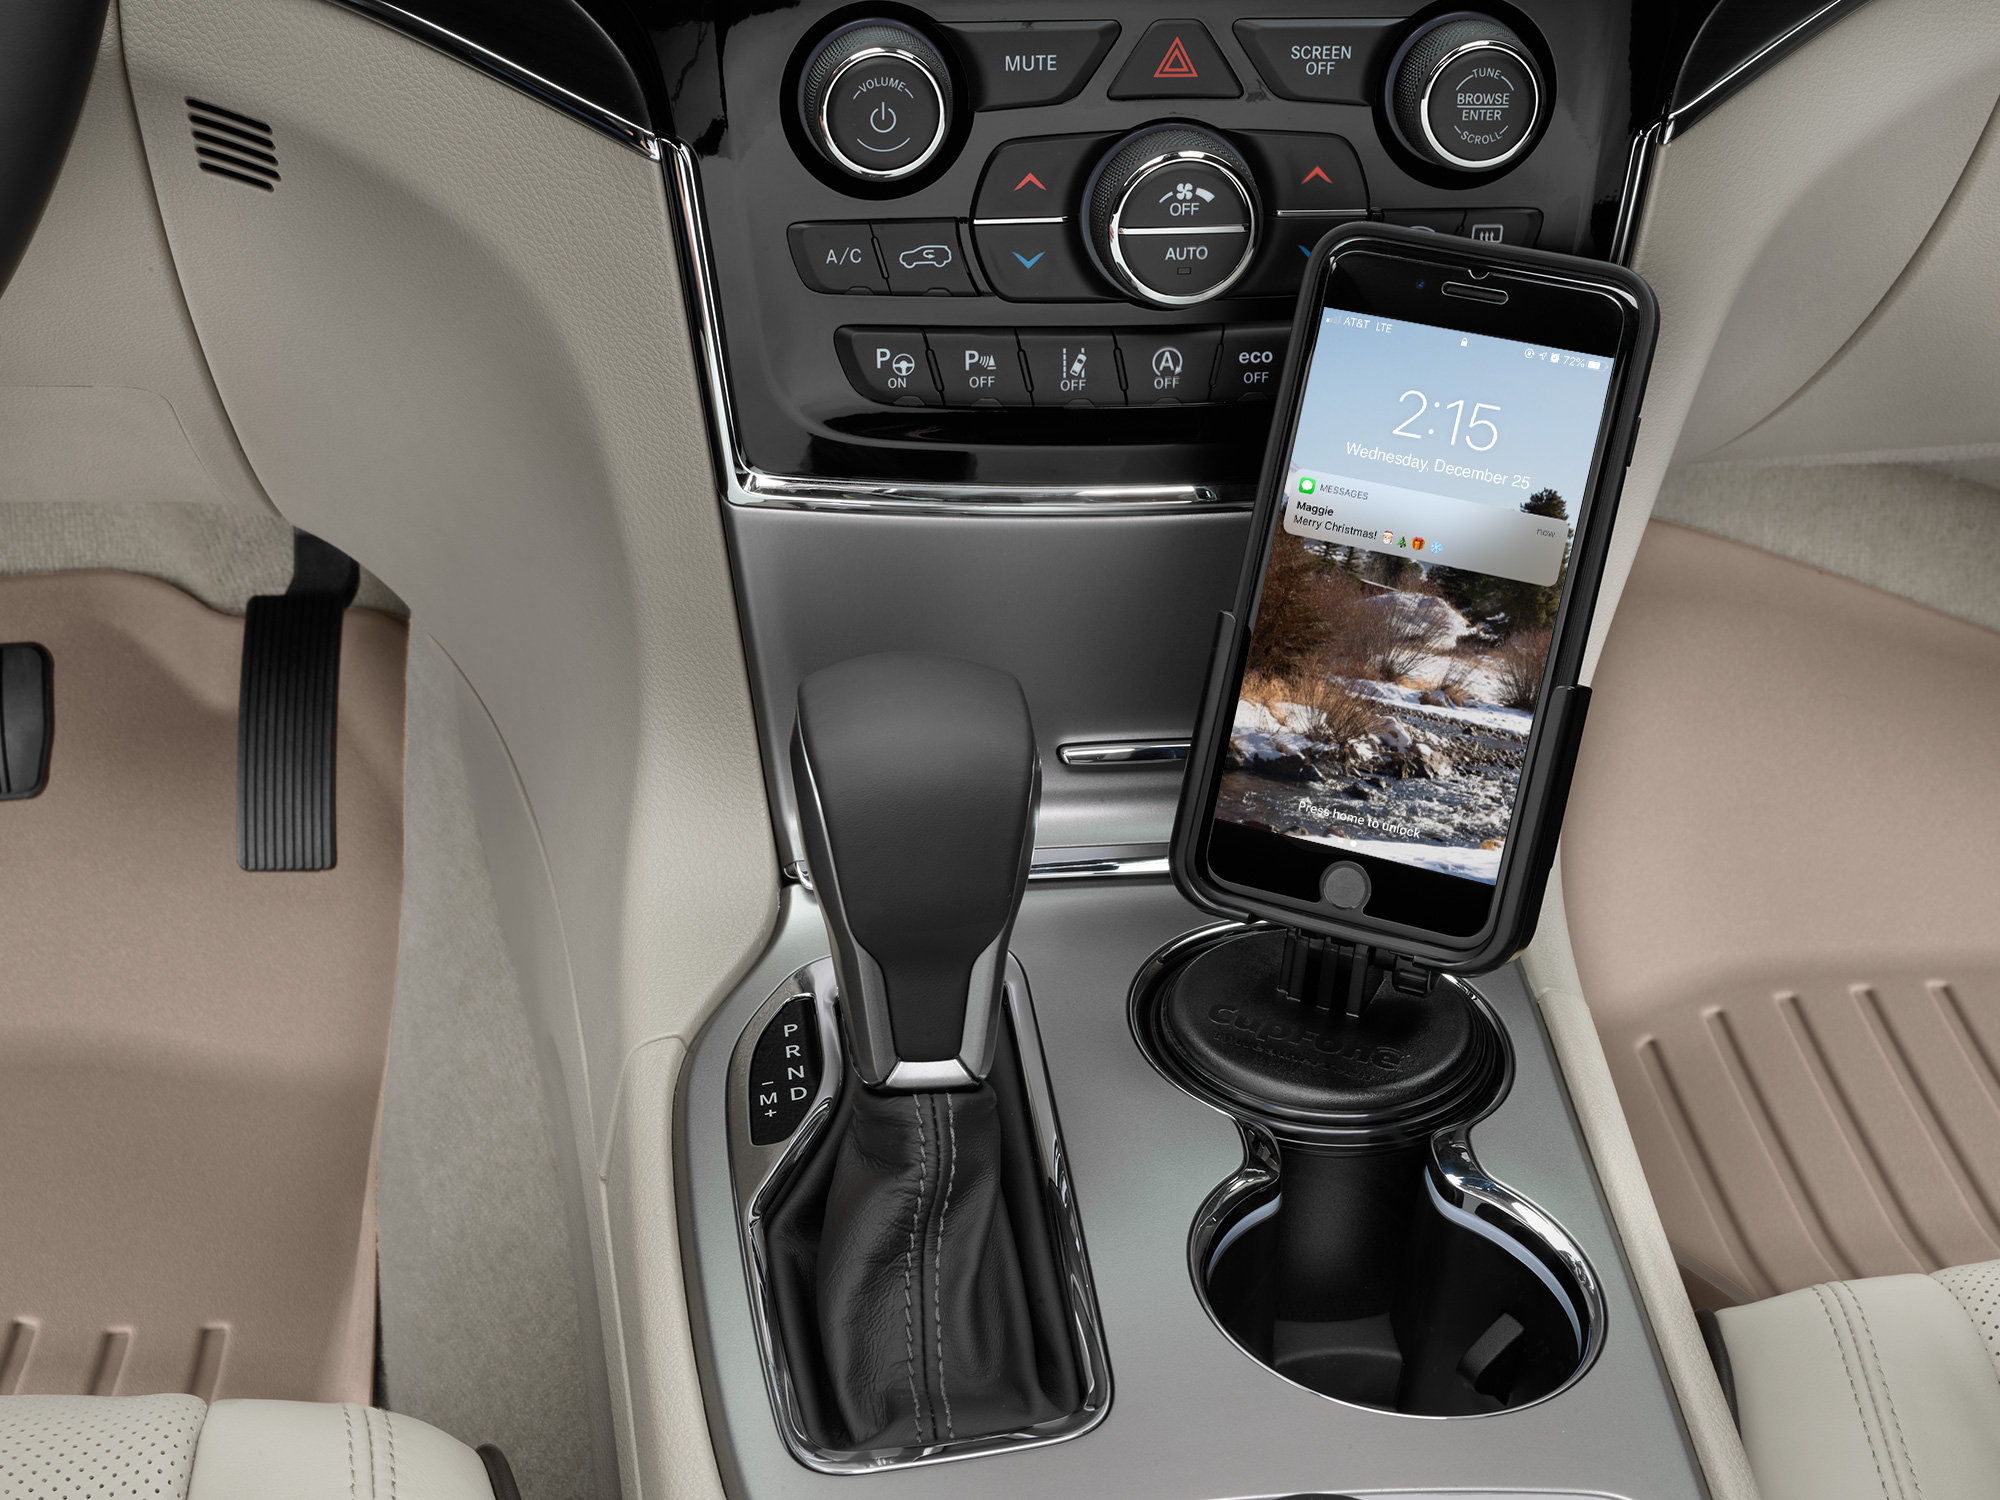 Car Accessories to Make Your Life Easier